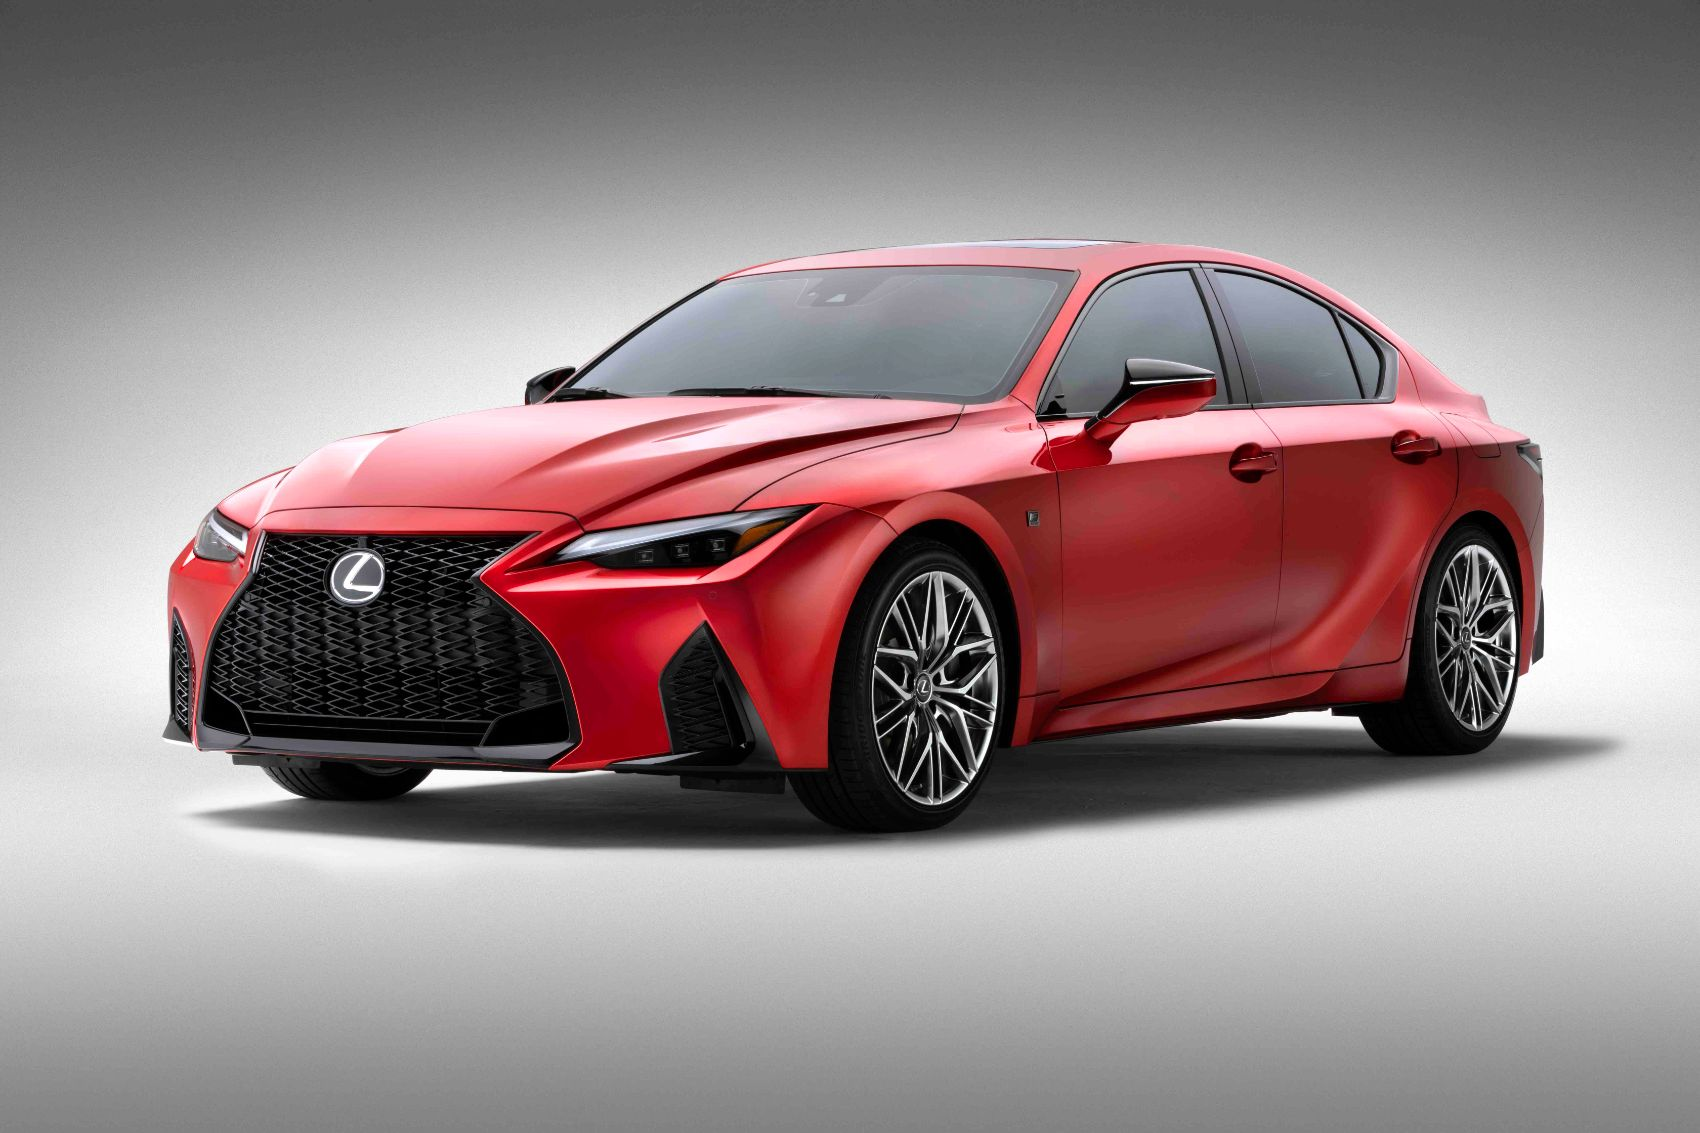 Lexus IS 500 F SPORT Performance: There's a Powerful V8 Under That Raised Hood!